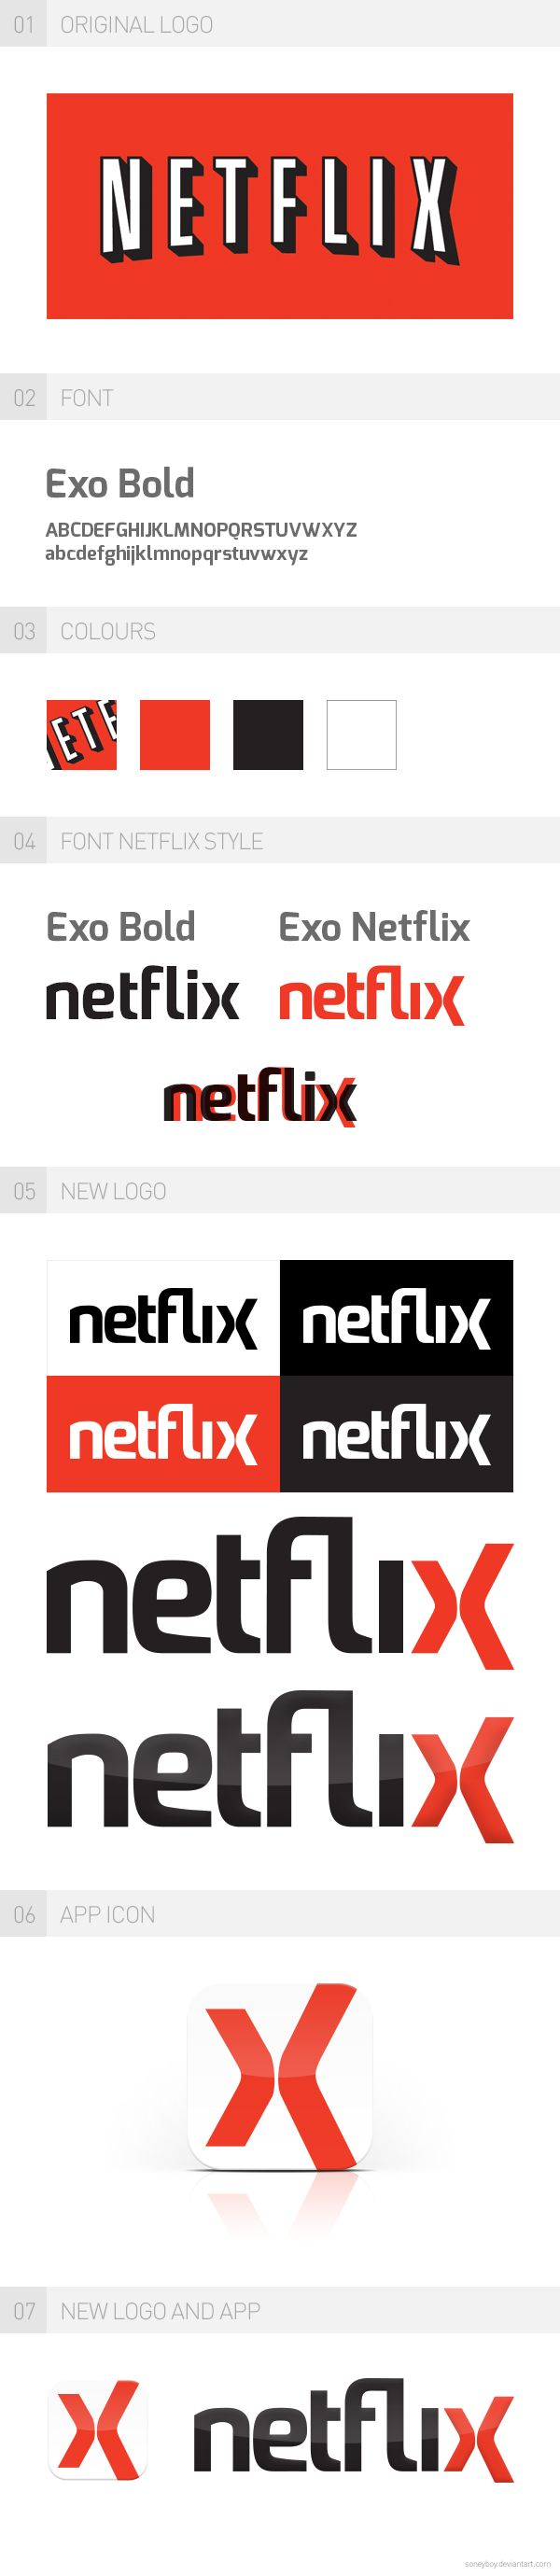 Netflix Redesign 2013 by Sonny Nordström, via Behance